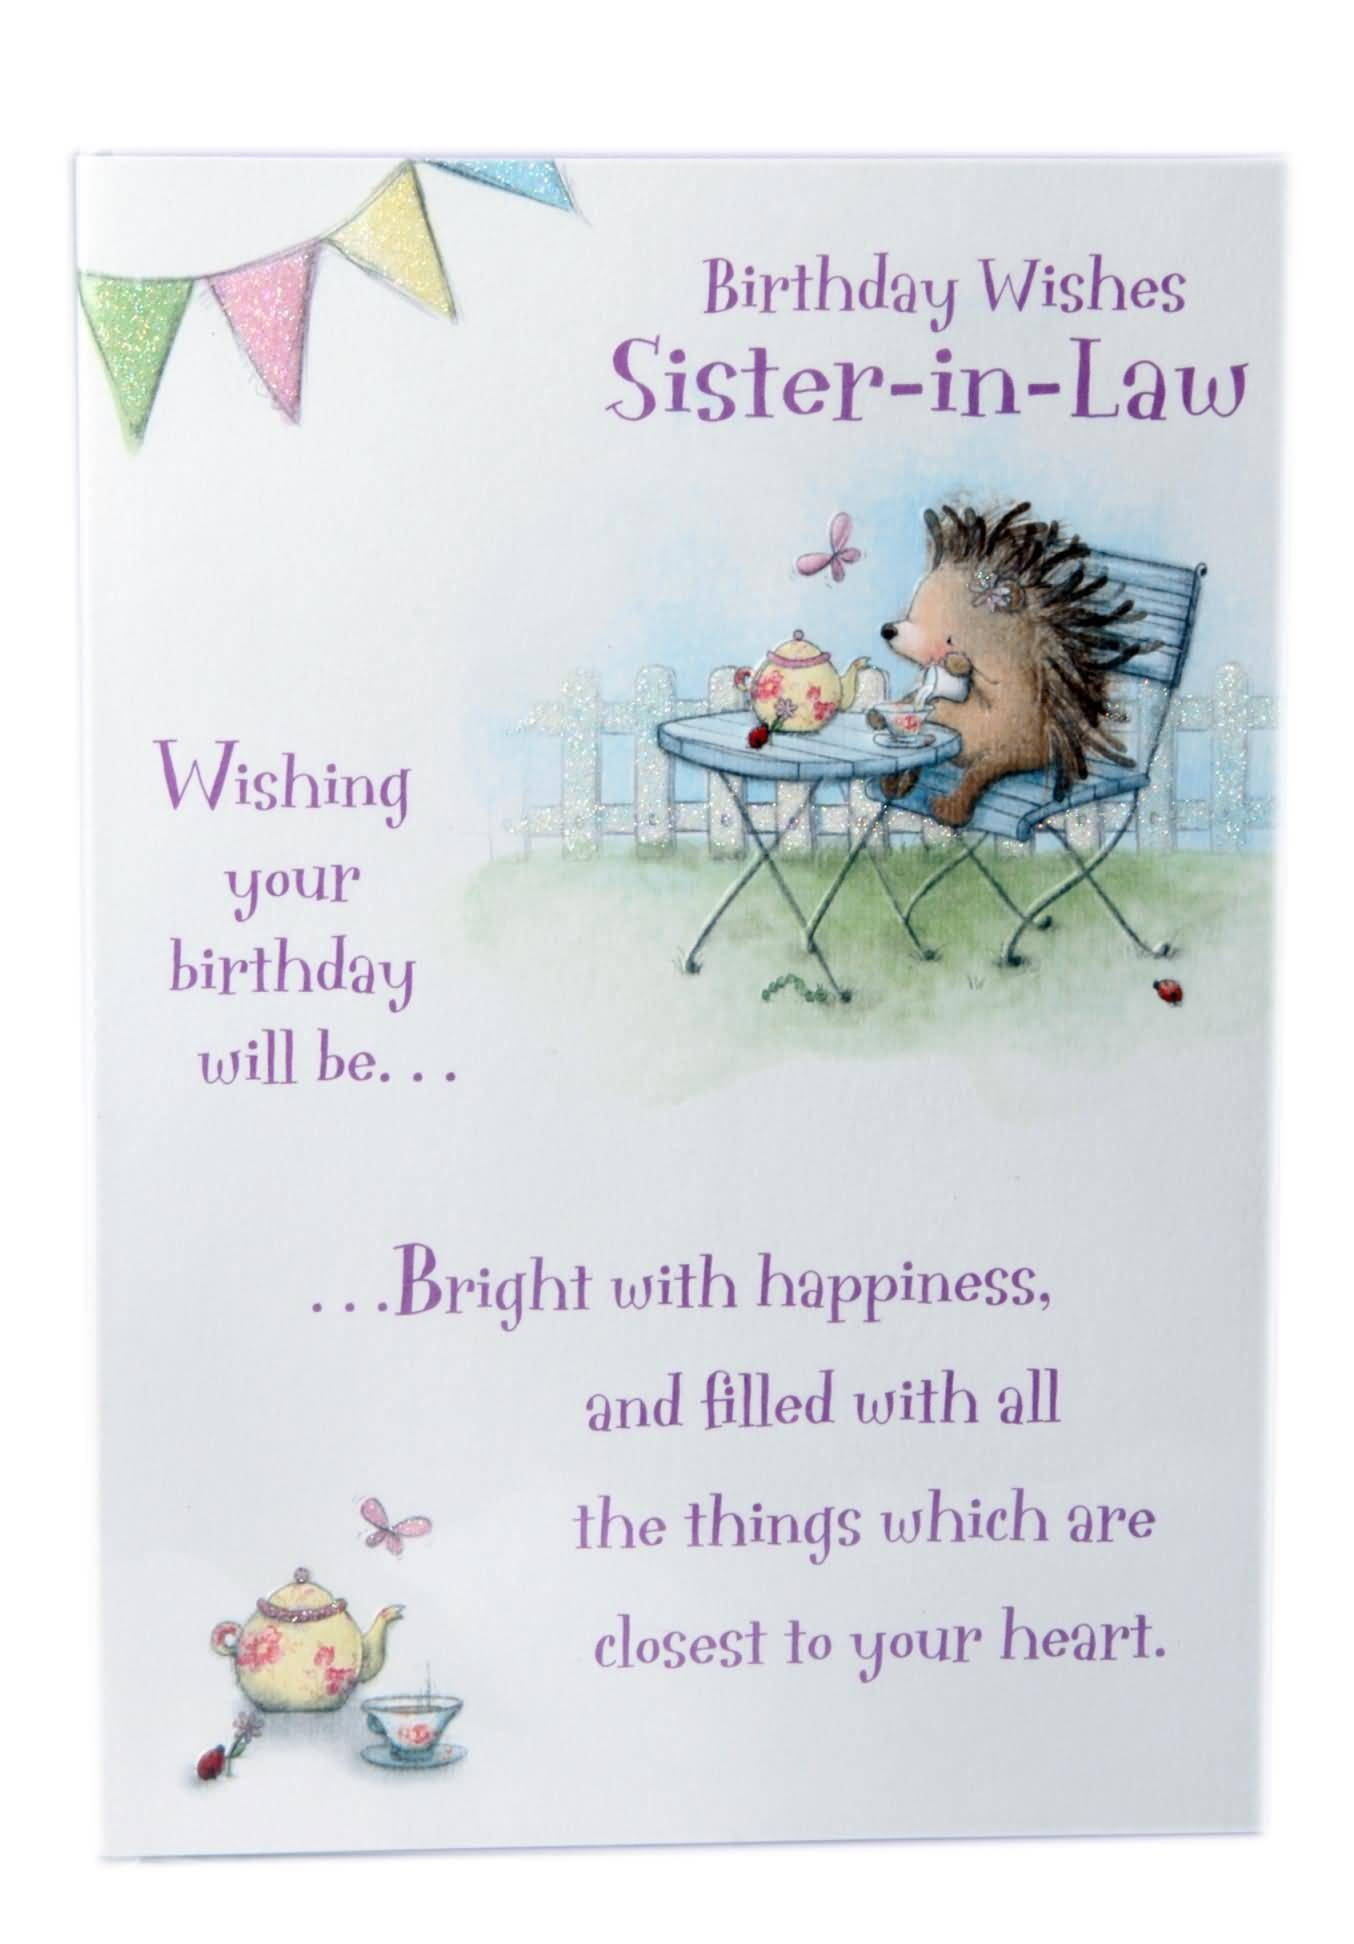 birthday wishes for sister in law poem ; 9d96743a9eee27c942320511812a9ec5